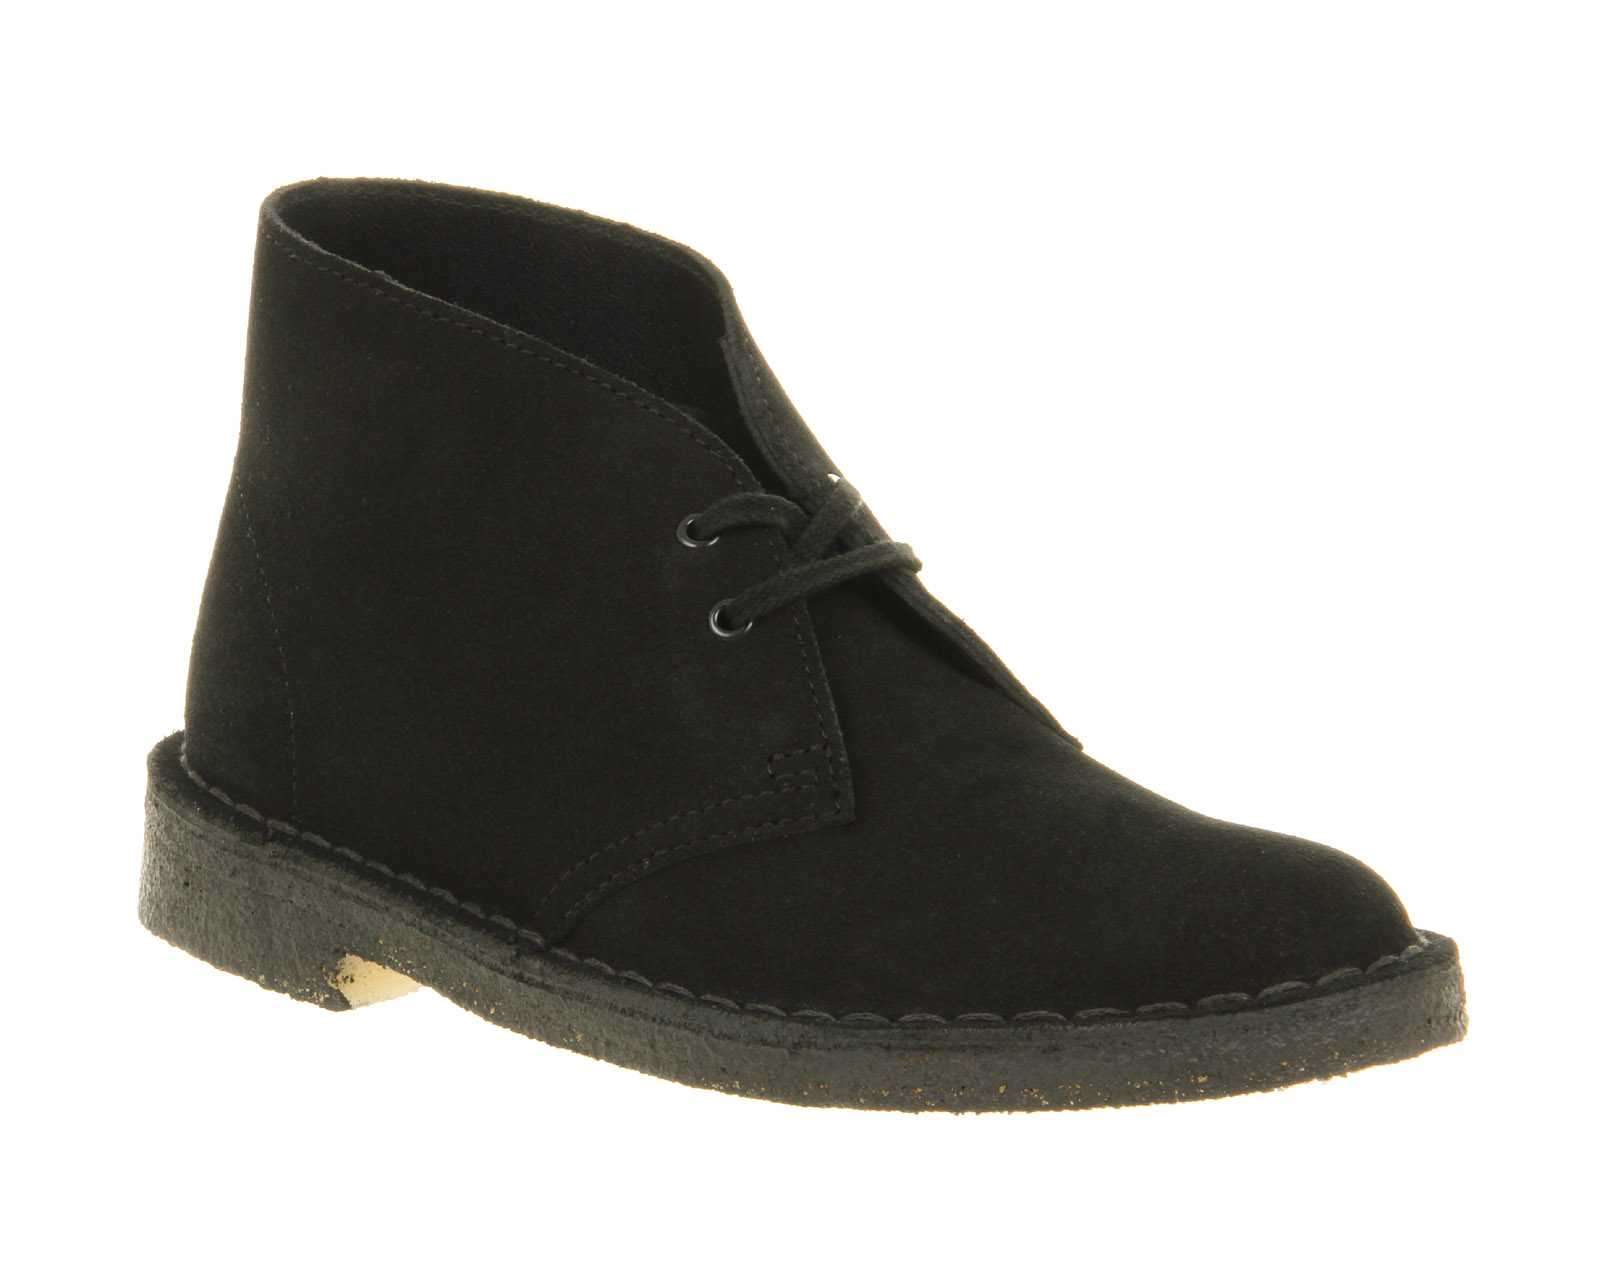 Unique Home Gt Womens Shoes Gt Boots Gt Womens Desert Boot Item 26111496